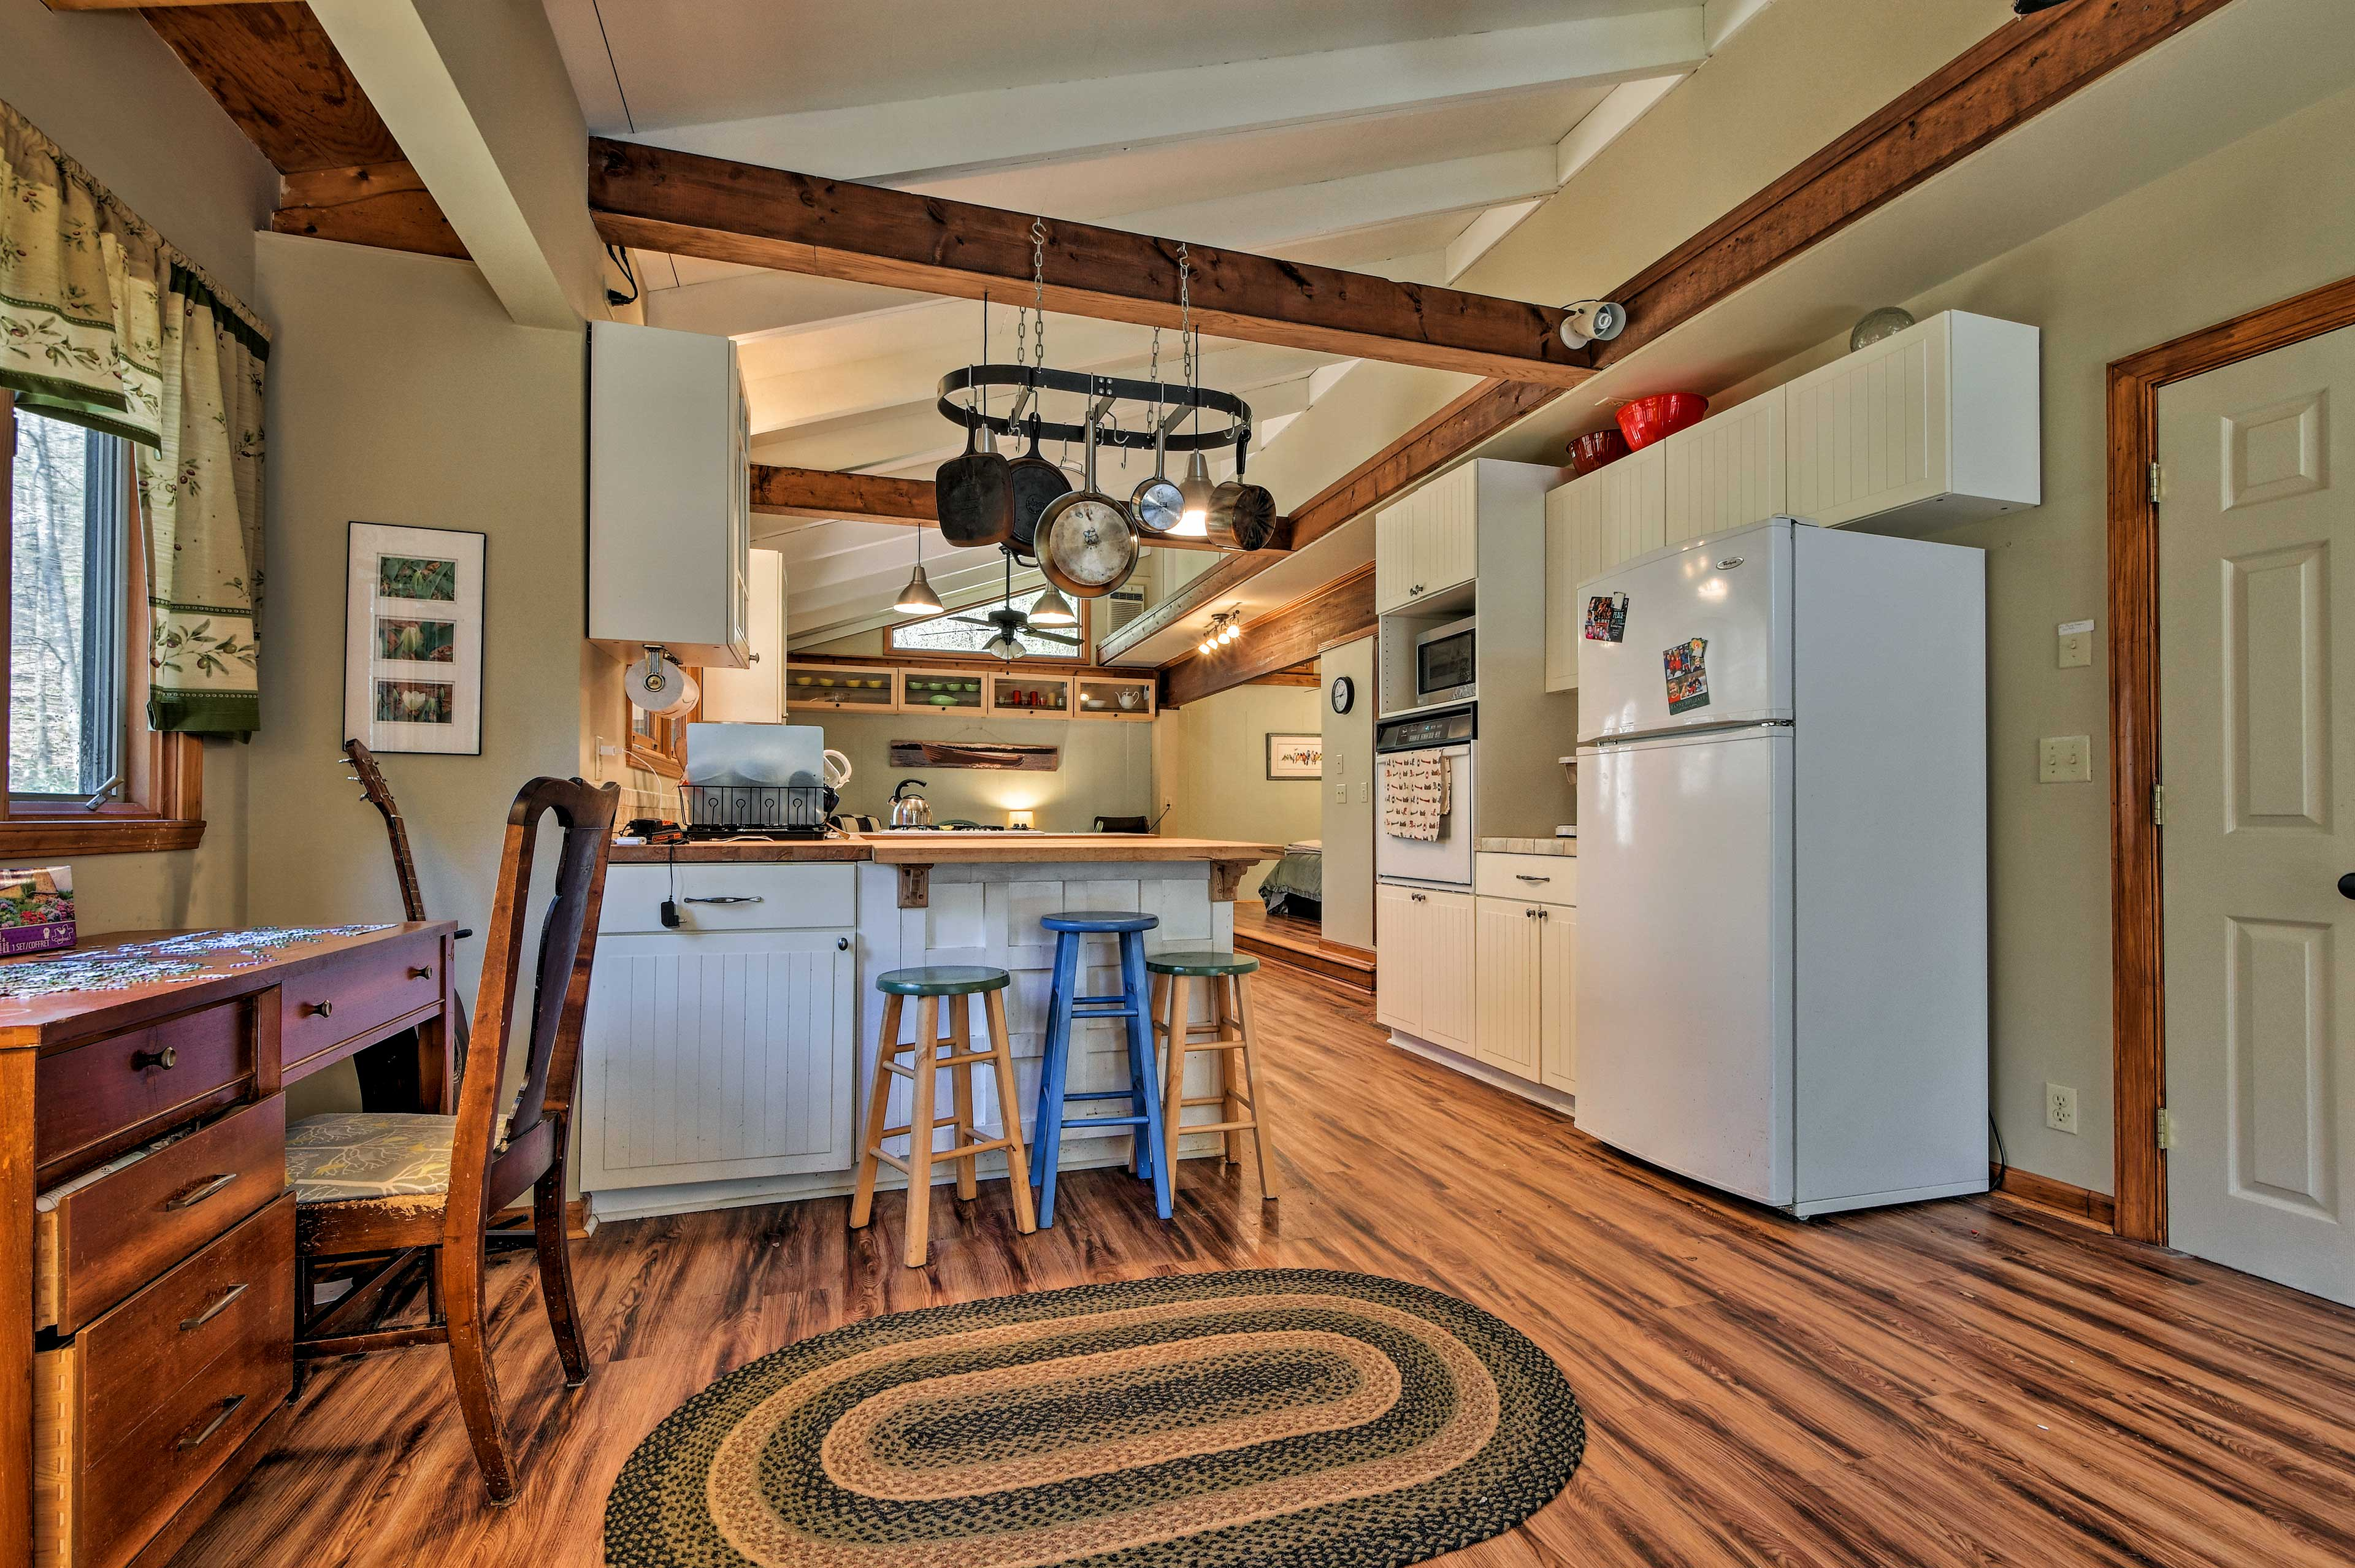 The living space flows right into the kitchen and dining area!